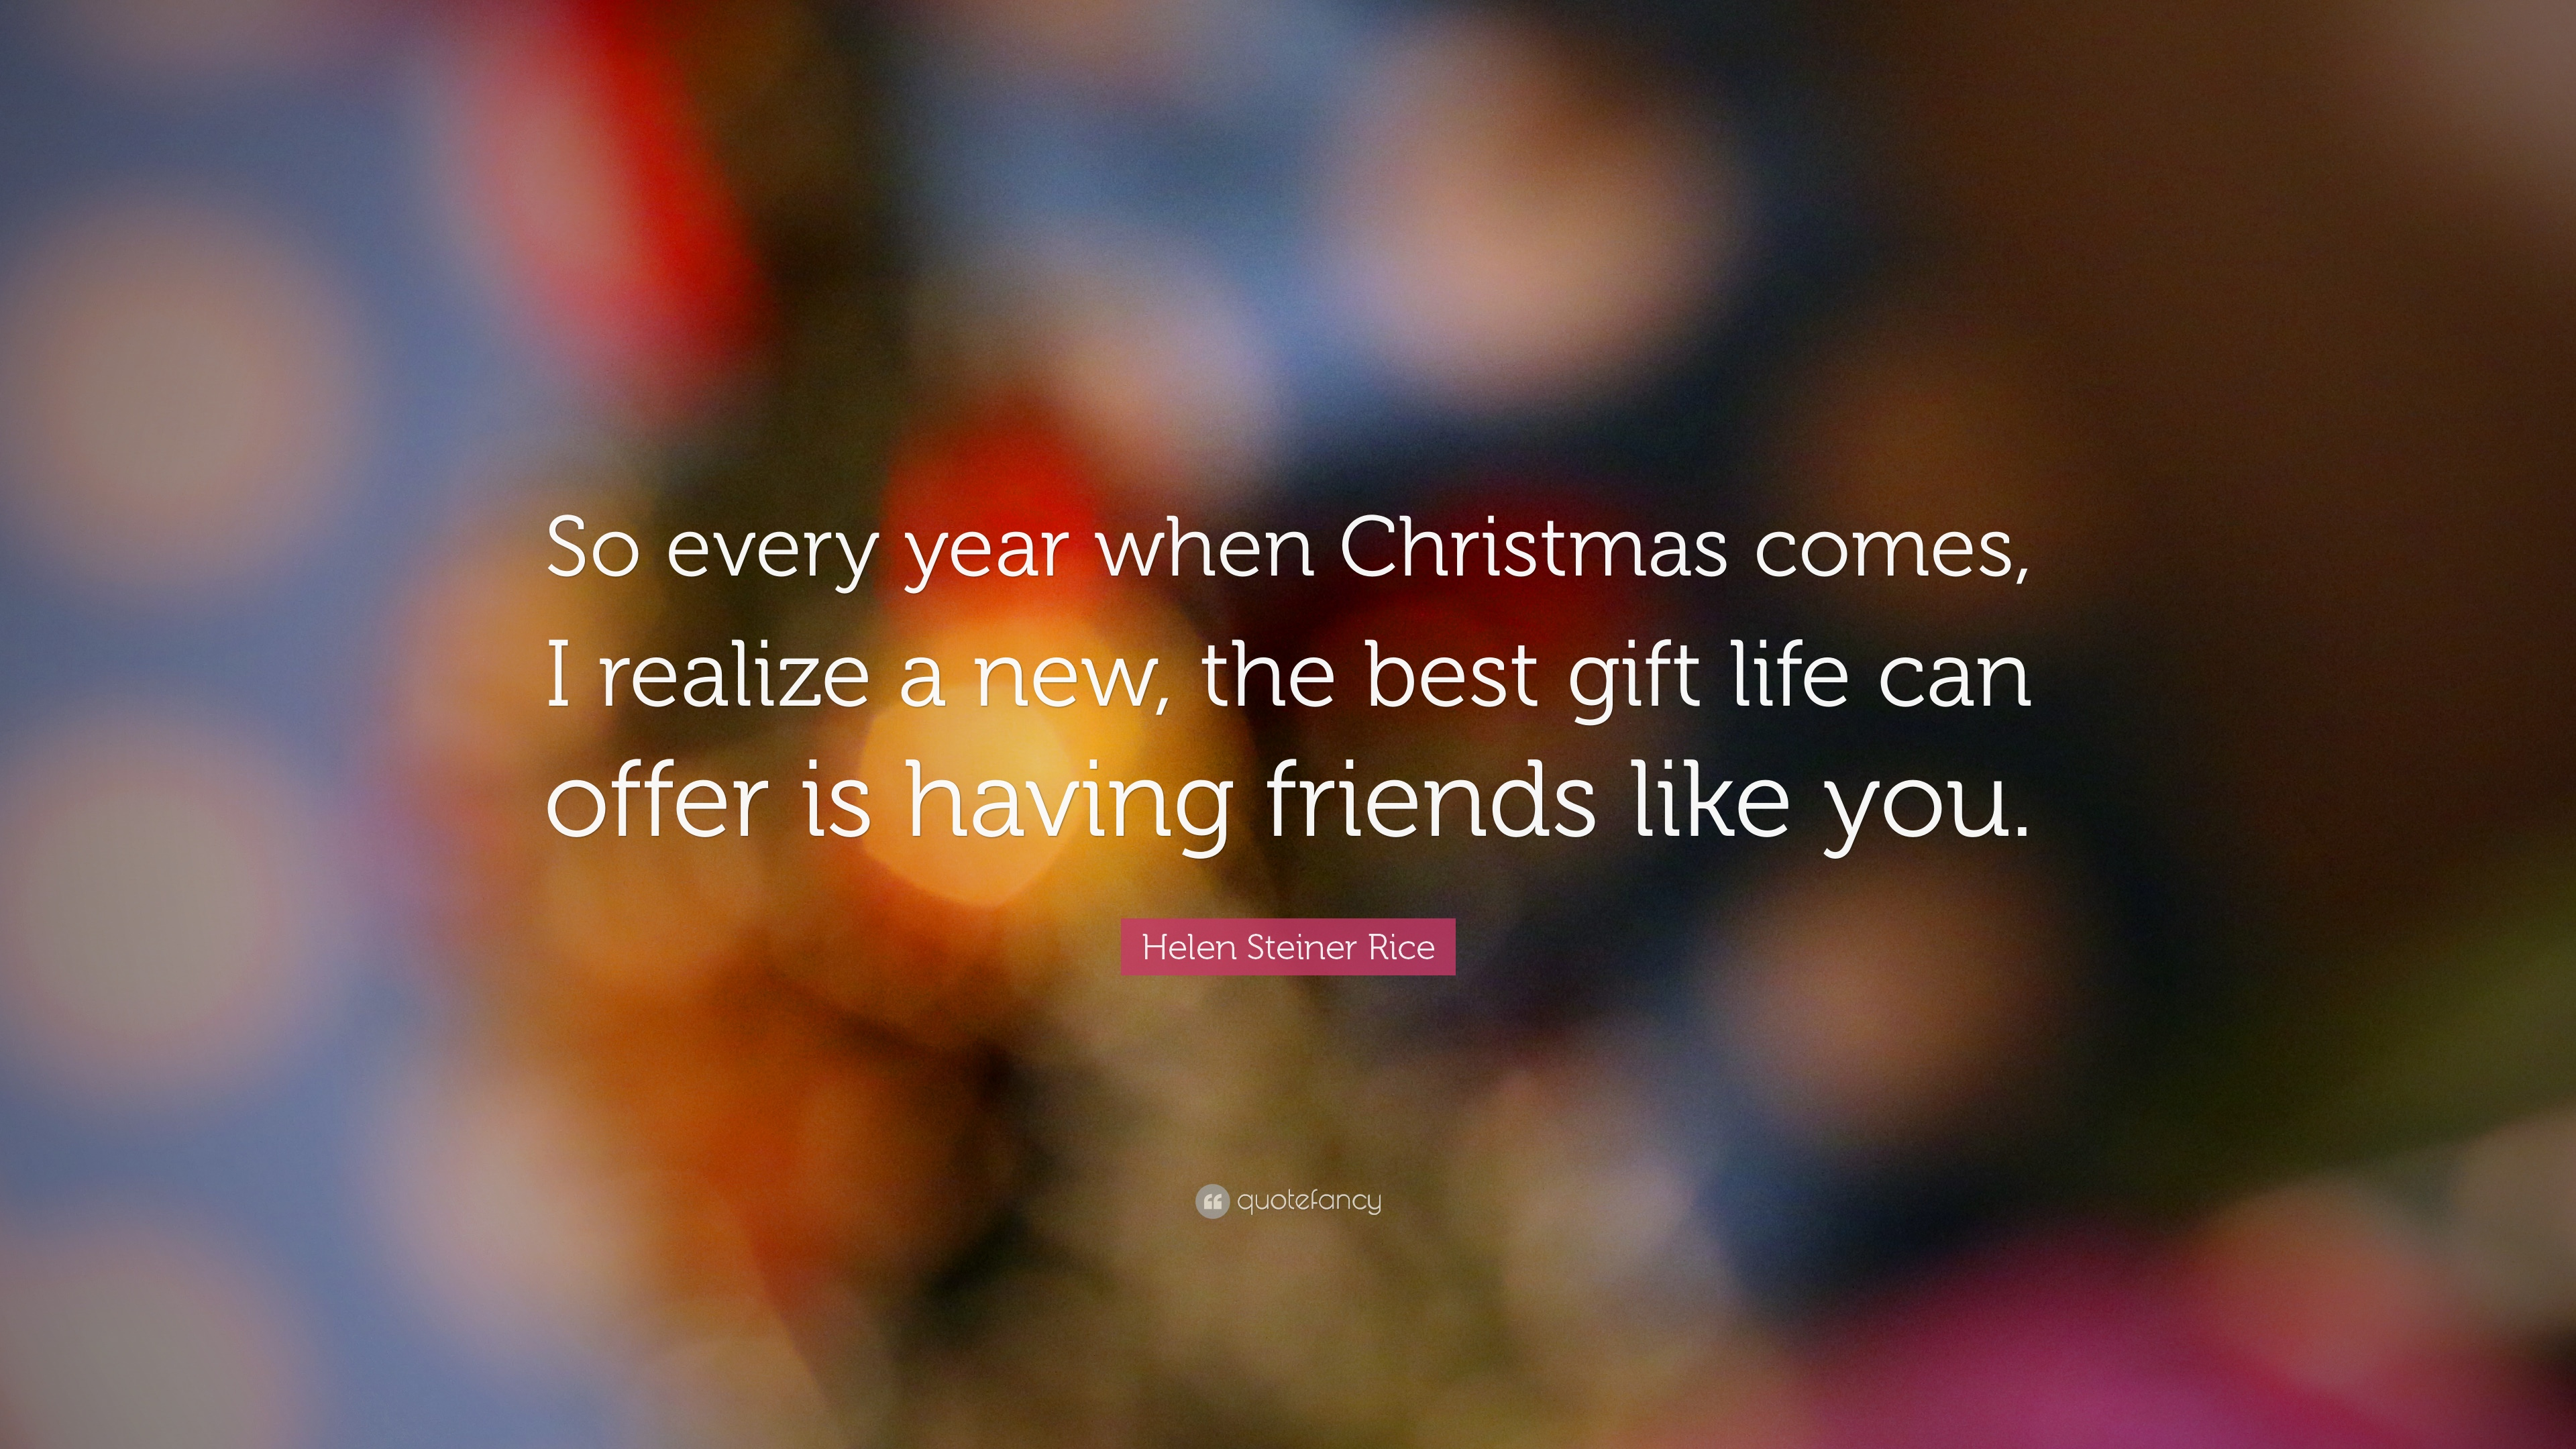 Christmas Quotes: U201cSo Every Year When Christmas Comes, I Realize A New,